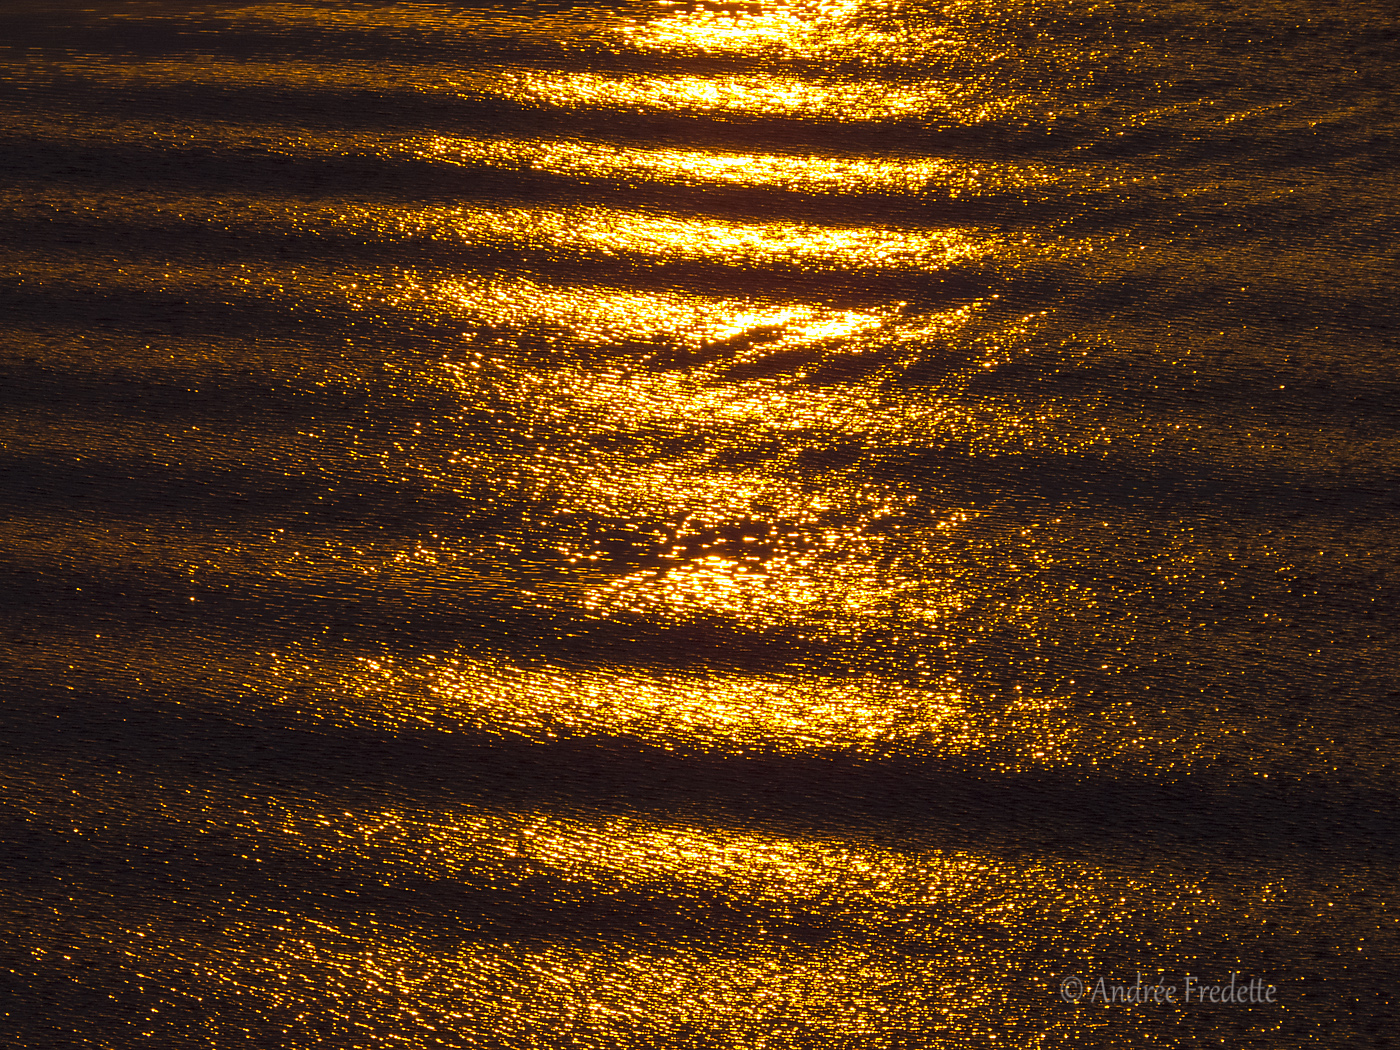 Sunset reflected in the water. Photo by Andrée Fredette